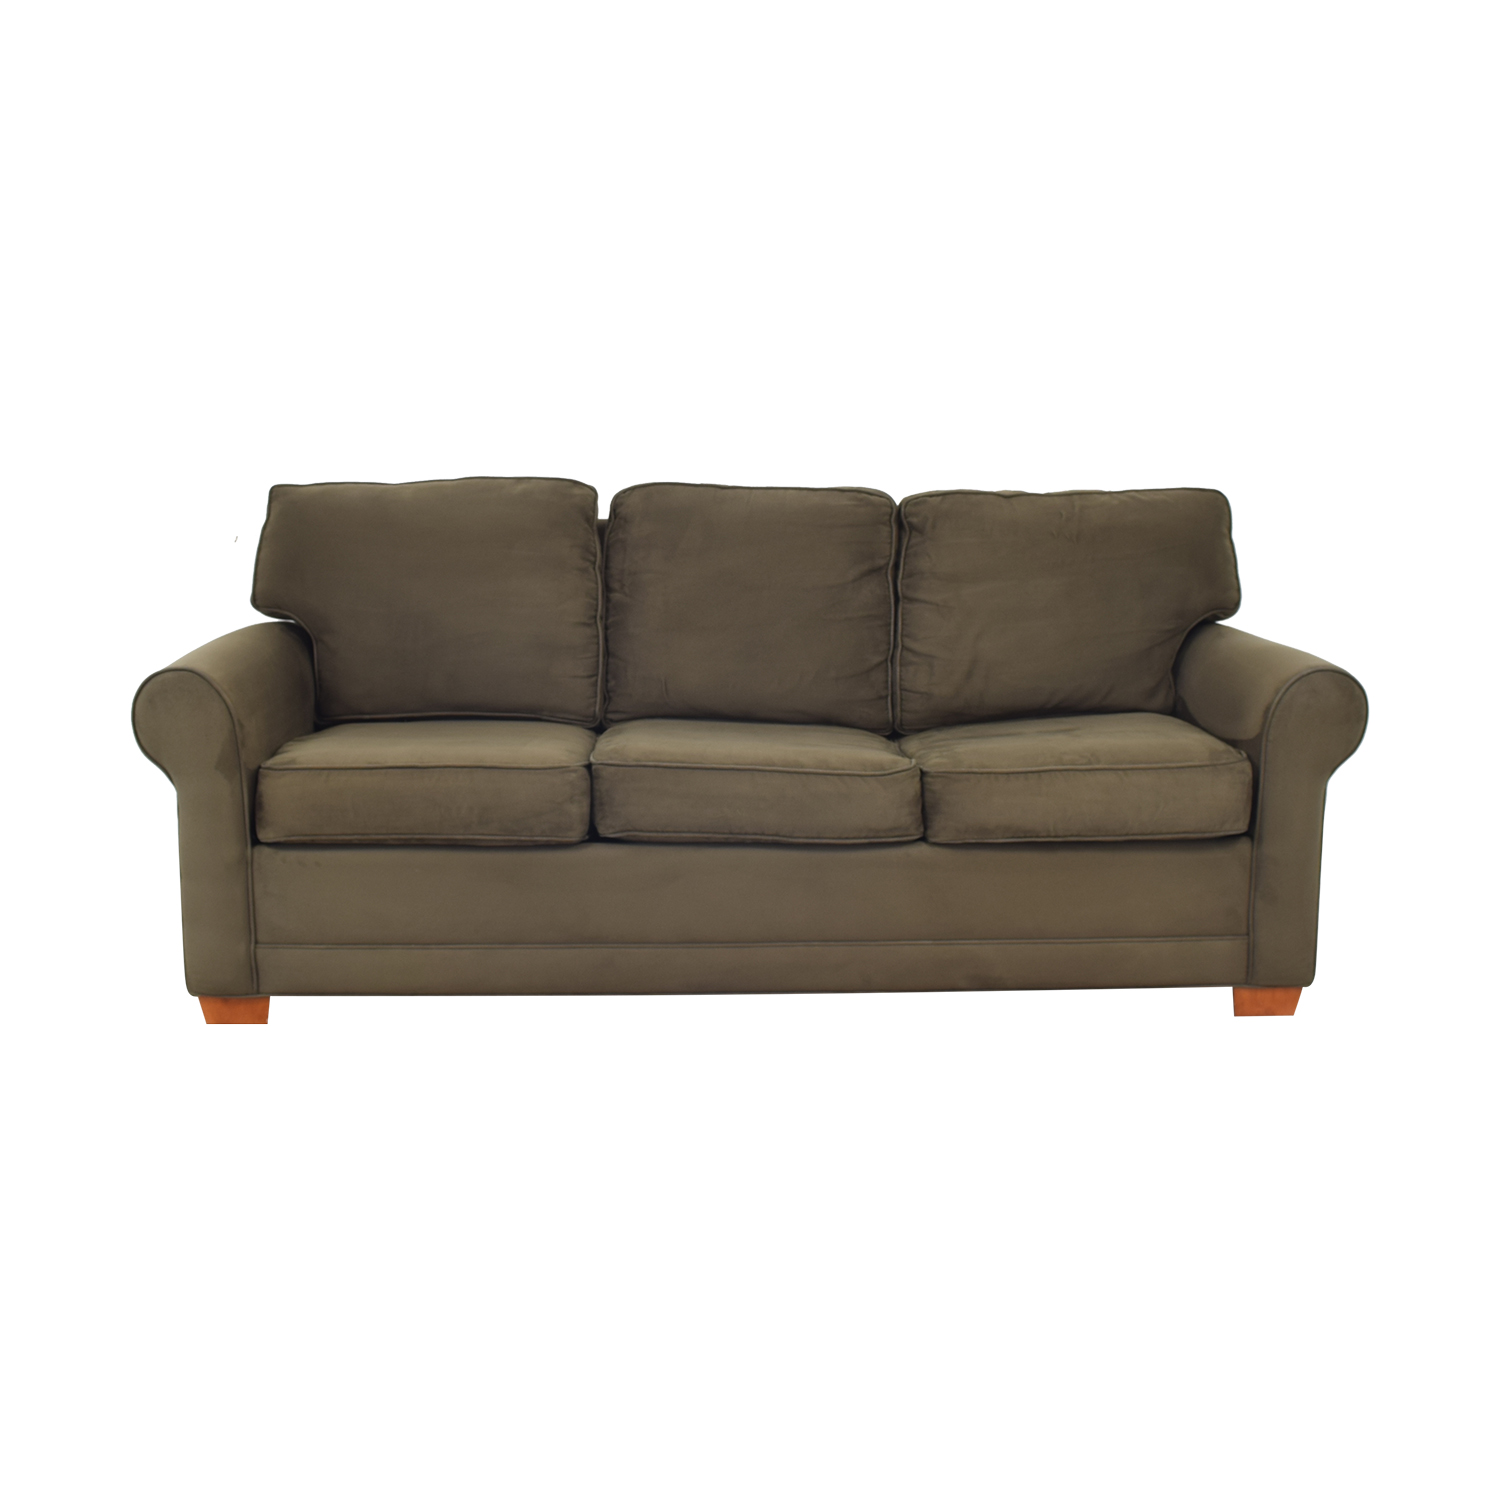 shop Raymour & Flanigan Raymour & Flanigan Rolled Arm Three Seat Sofa Bed online